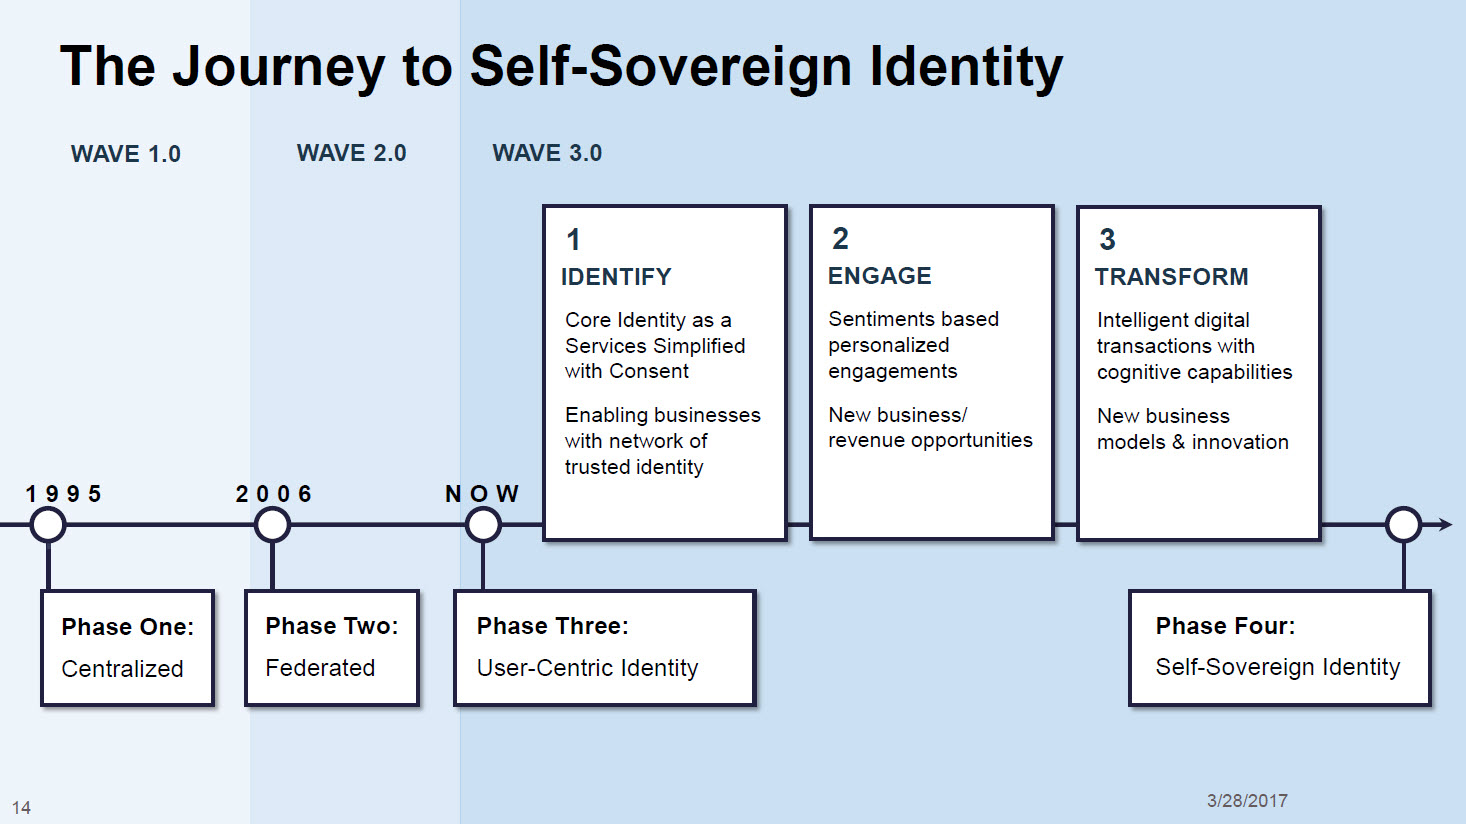 The Path to Self-Sovereign Identity